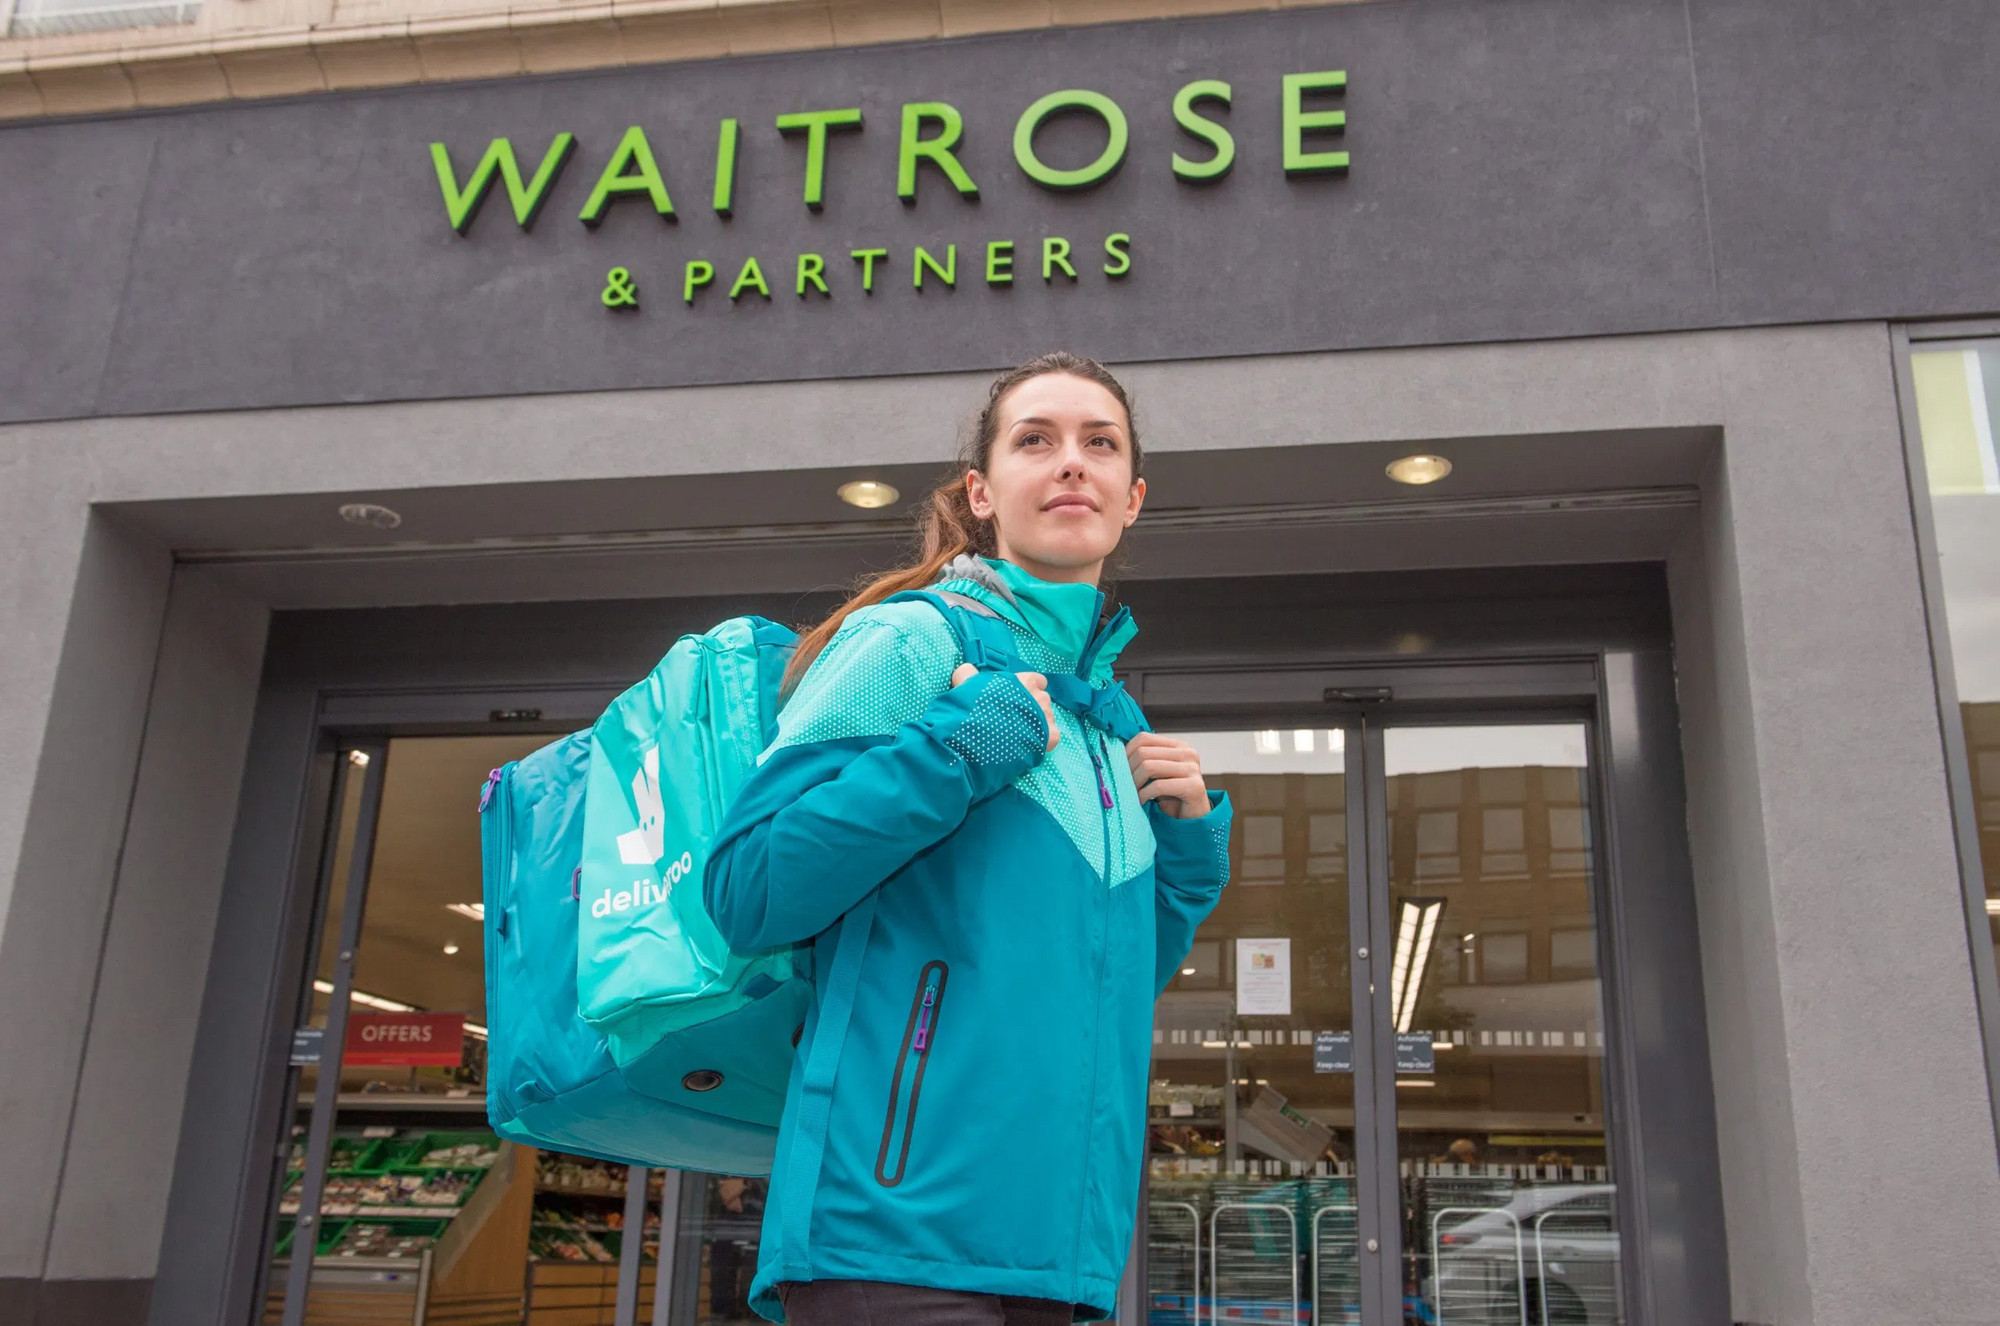 Deliveroo and Waitrose Launch a 30-Minute Grocery Delivery Trial